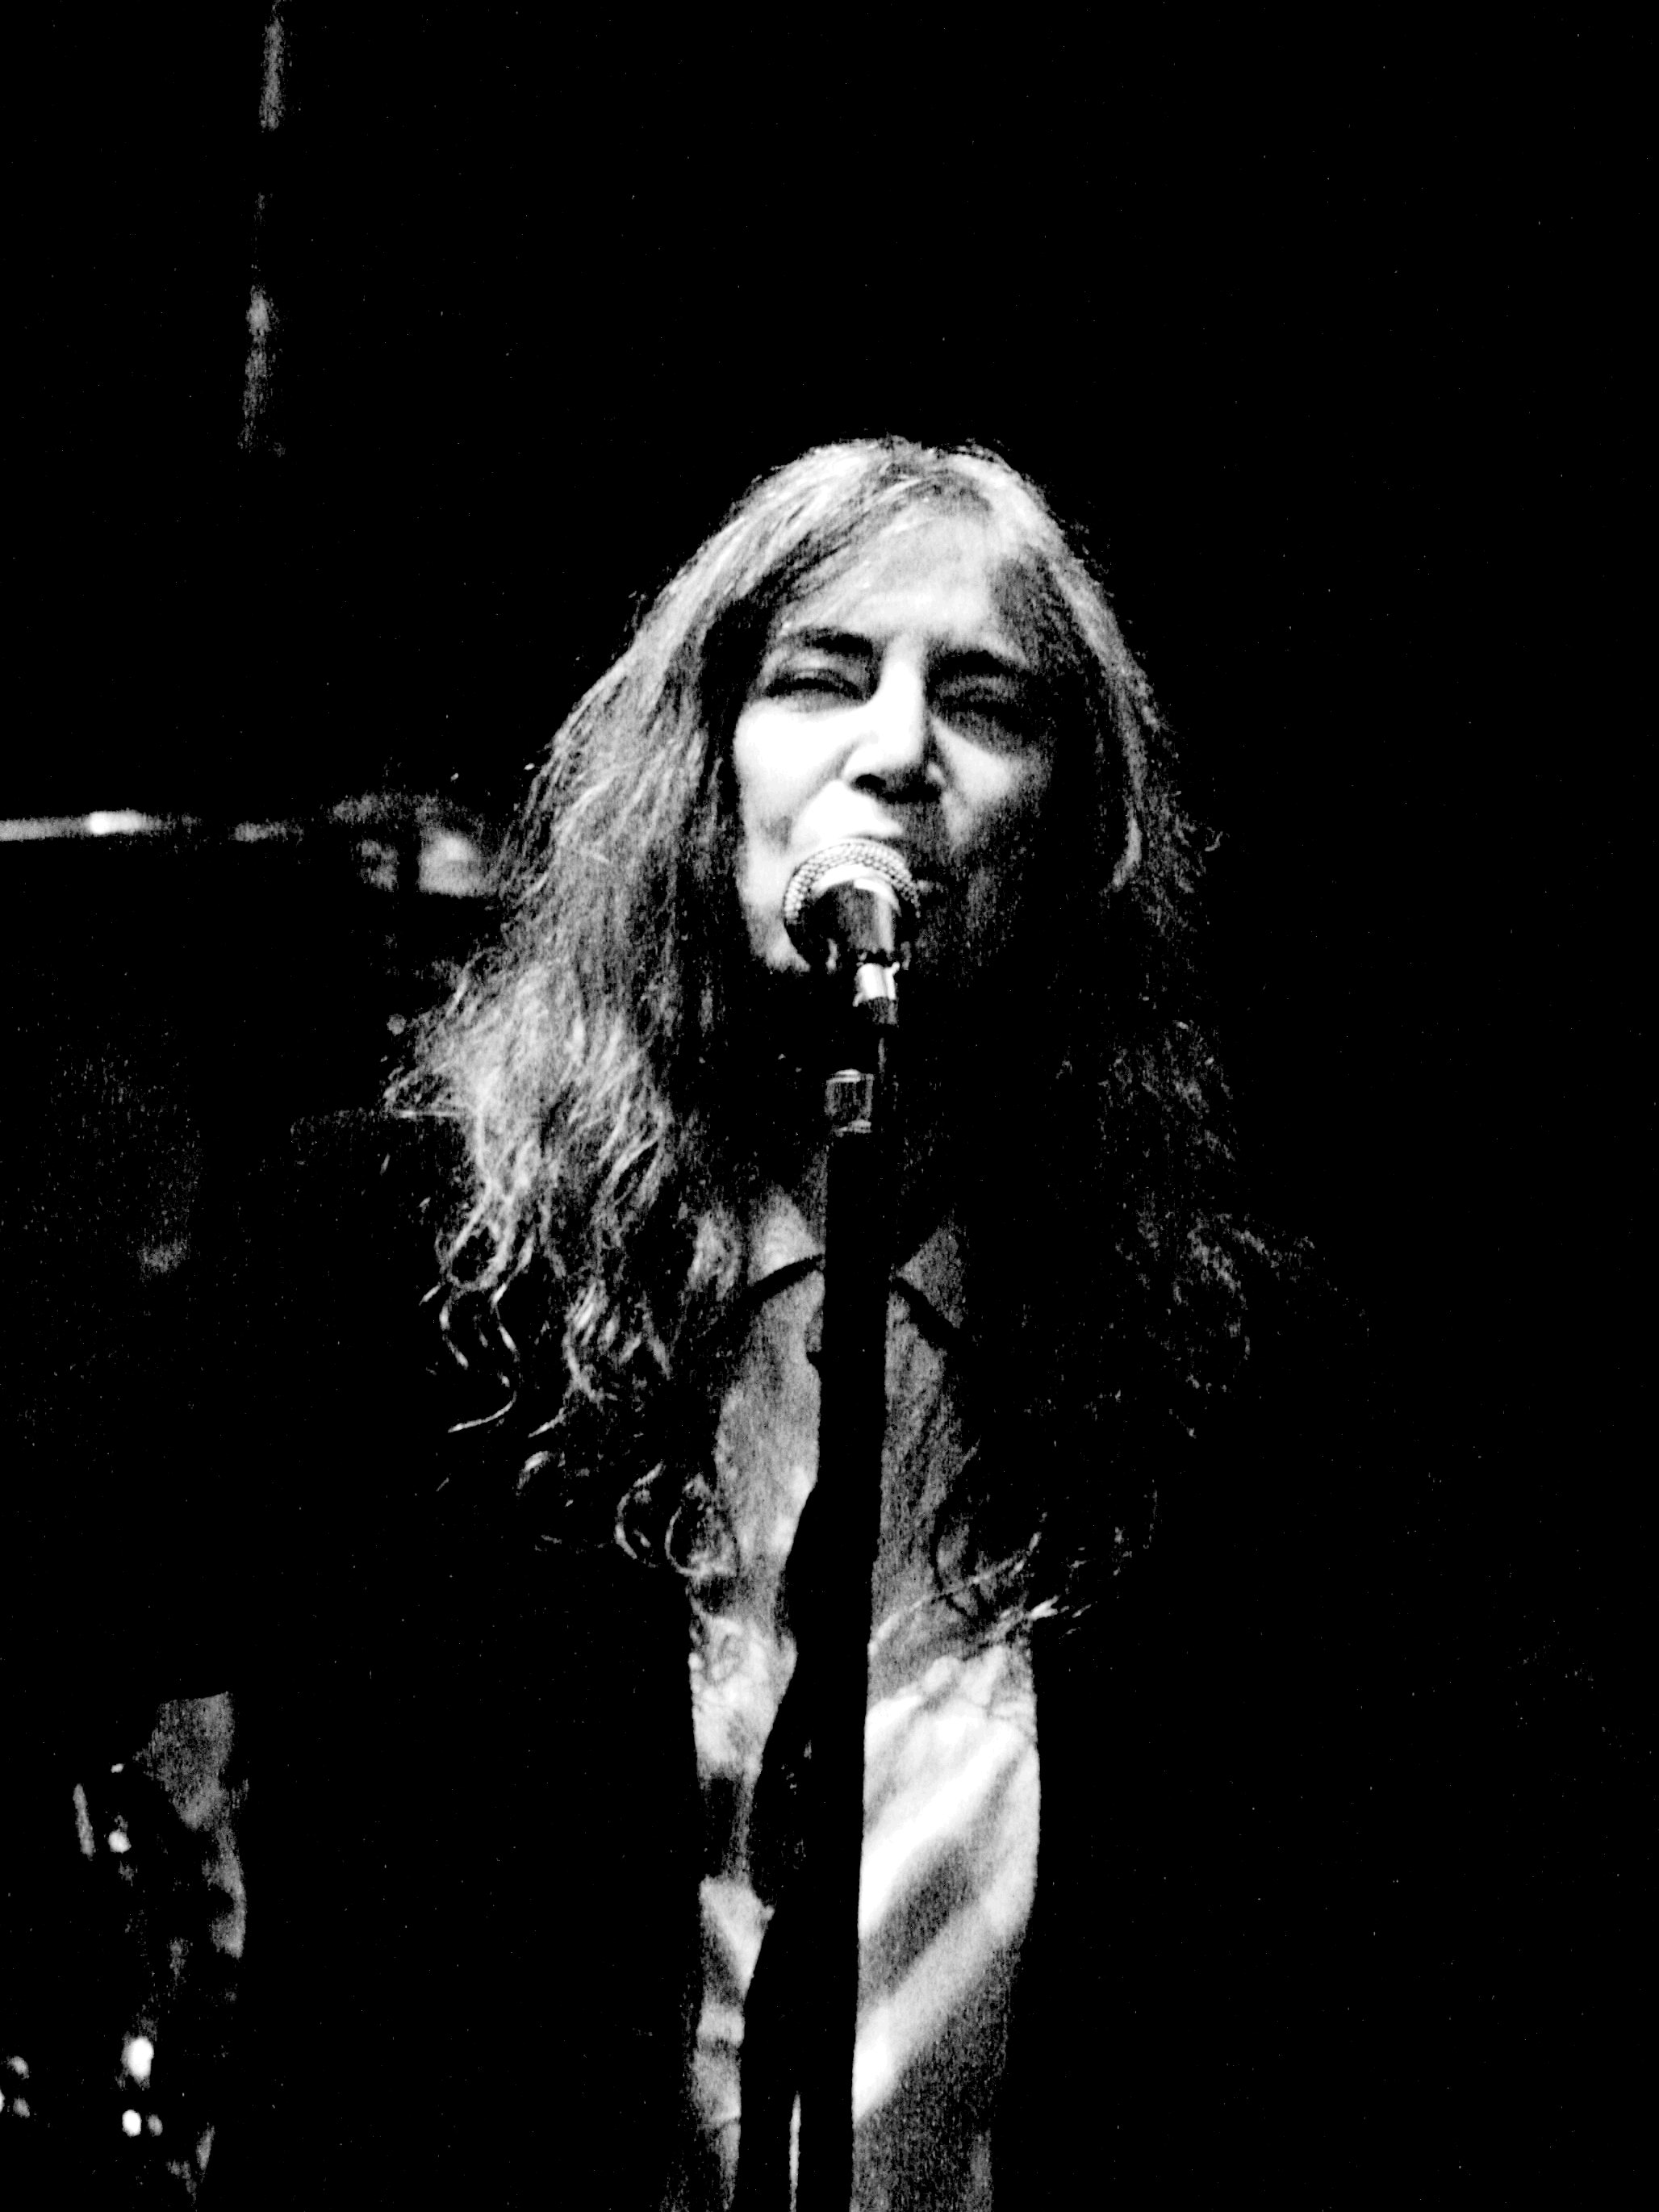 https://i0.wp.com/upload.wikimedia.org/wikipedia/commons/a/af/Patti_Smith_performing_at_Roundhouse%2C_London_%283%29.jpg